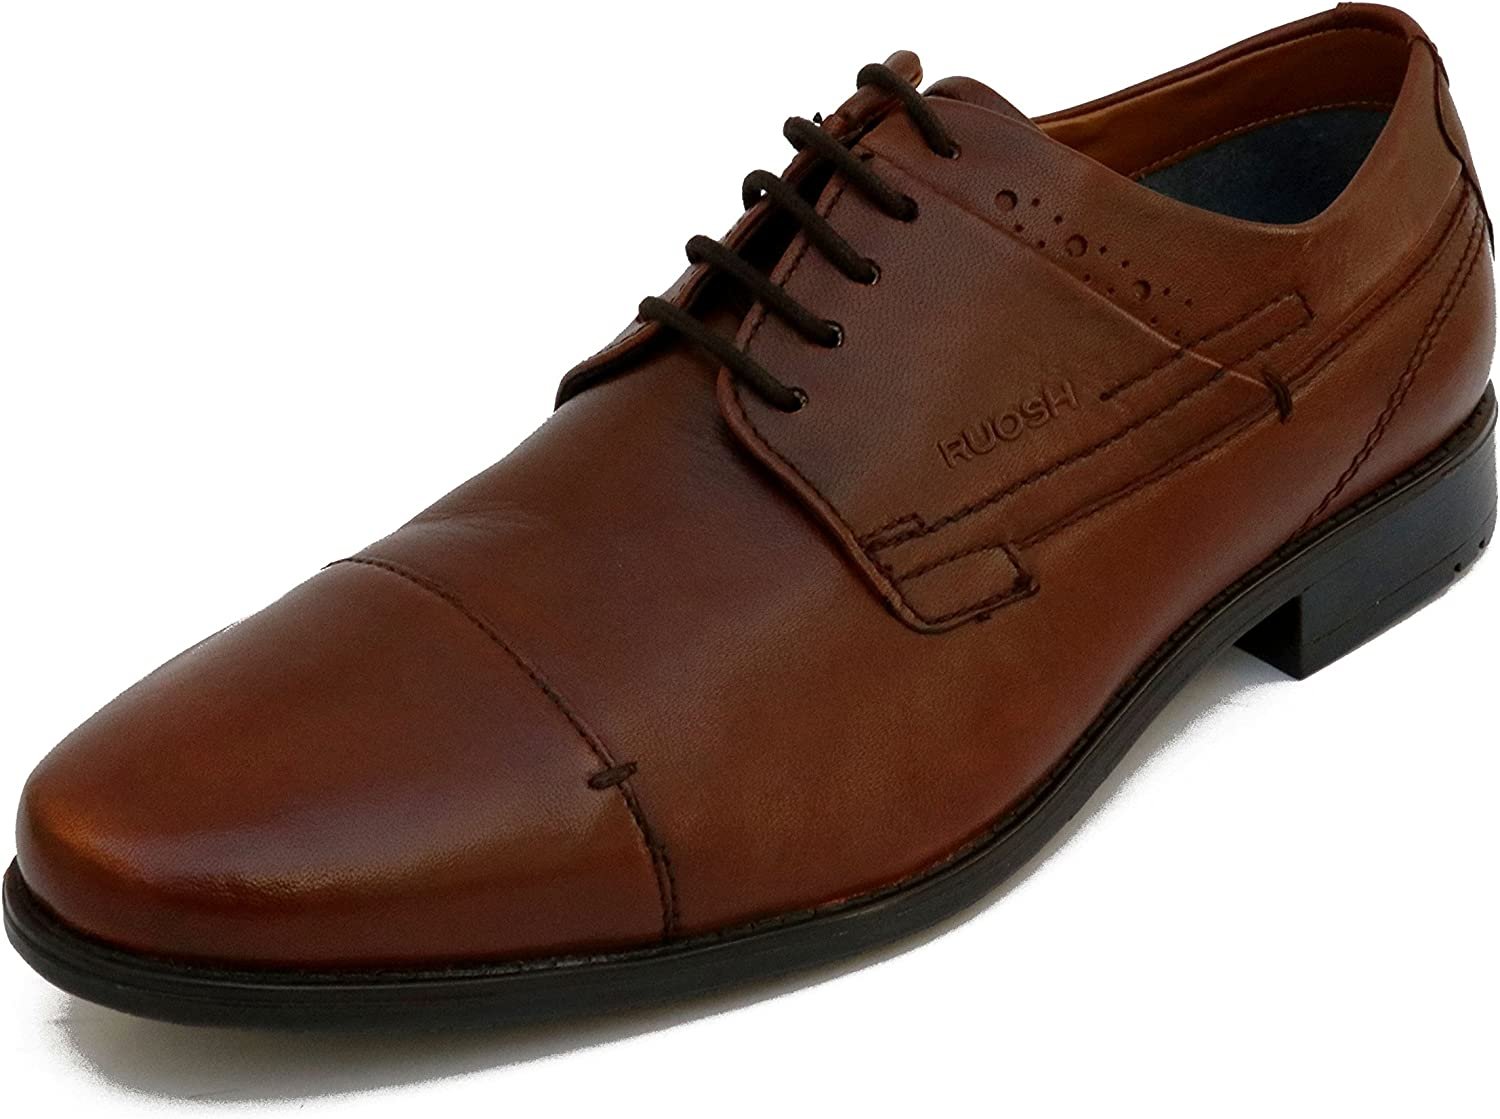 Ruosh Men's Tan Formal shoes-9 UK India (43 EU)(SS18-Nashford-01A)